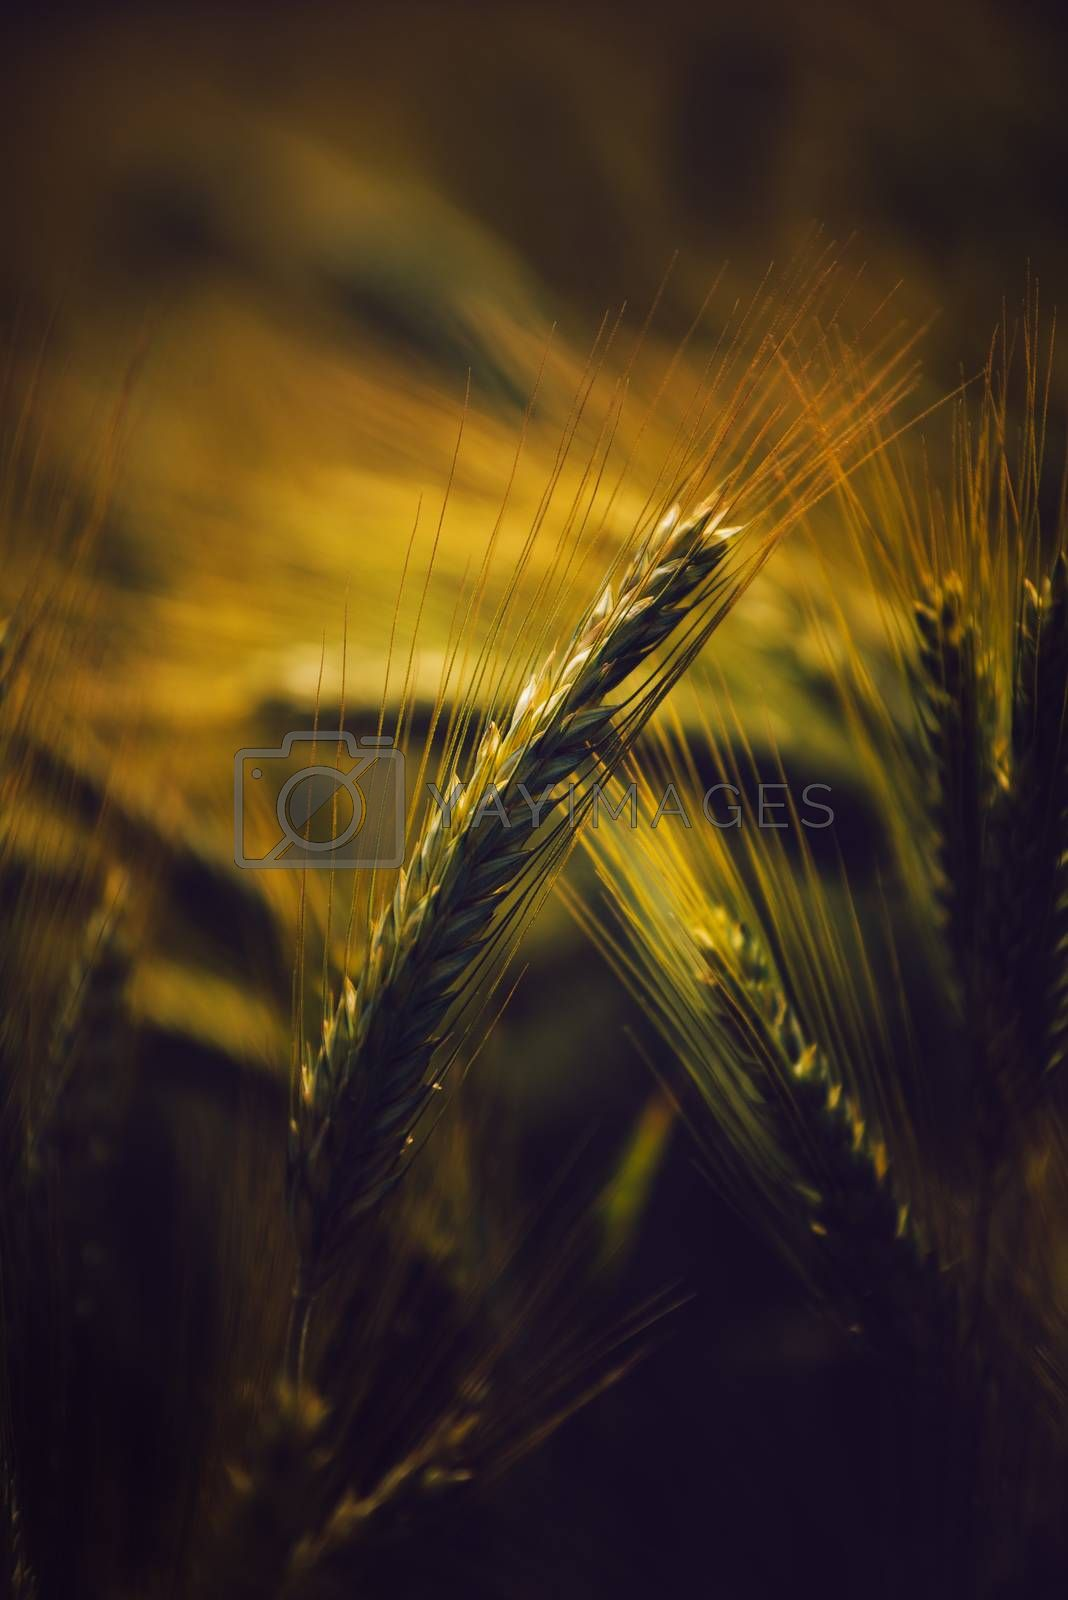 Barley ears in field, grain cereals growing in cultivated field, selective focus